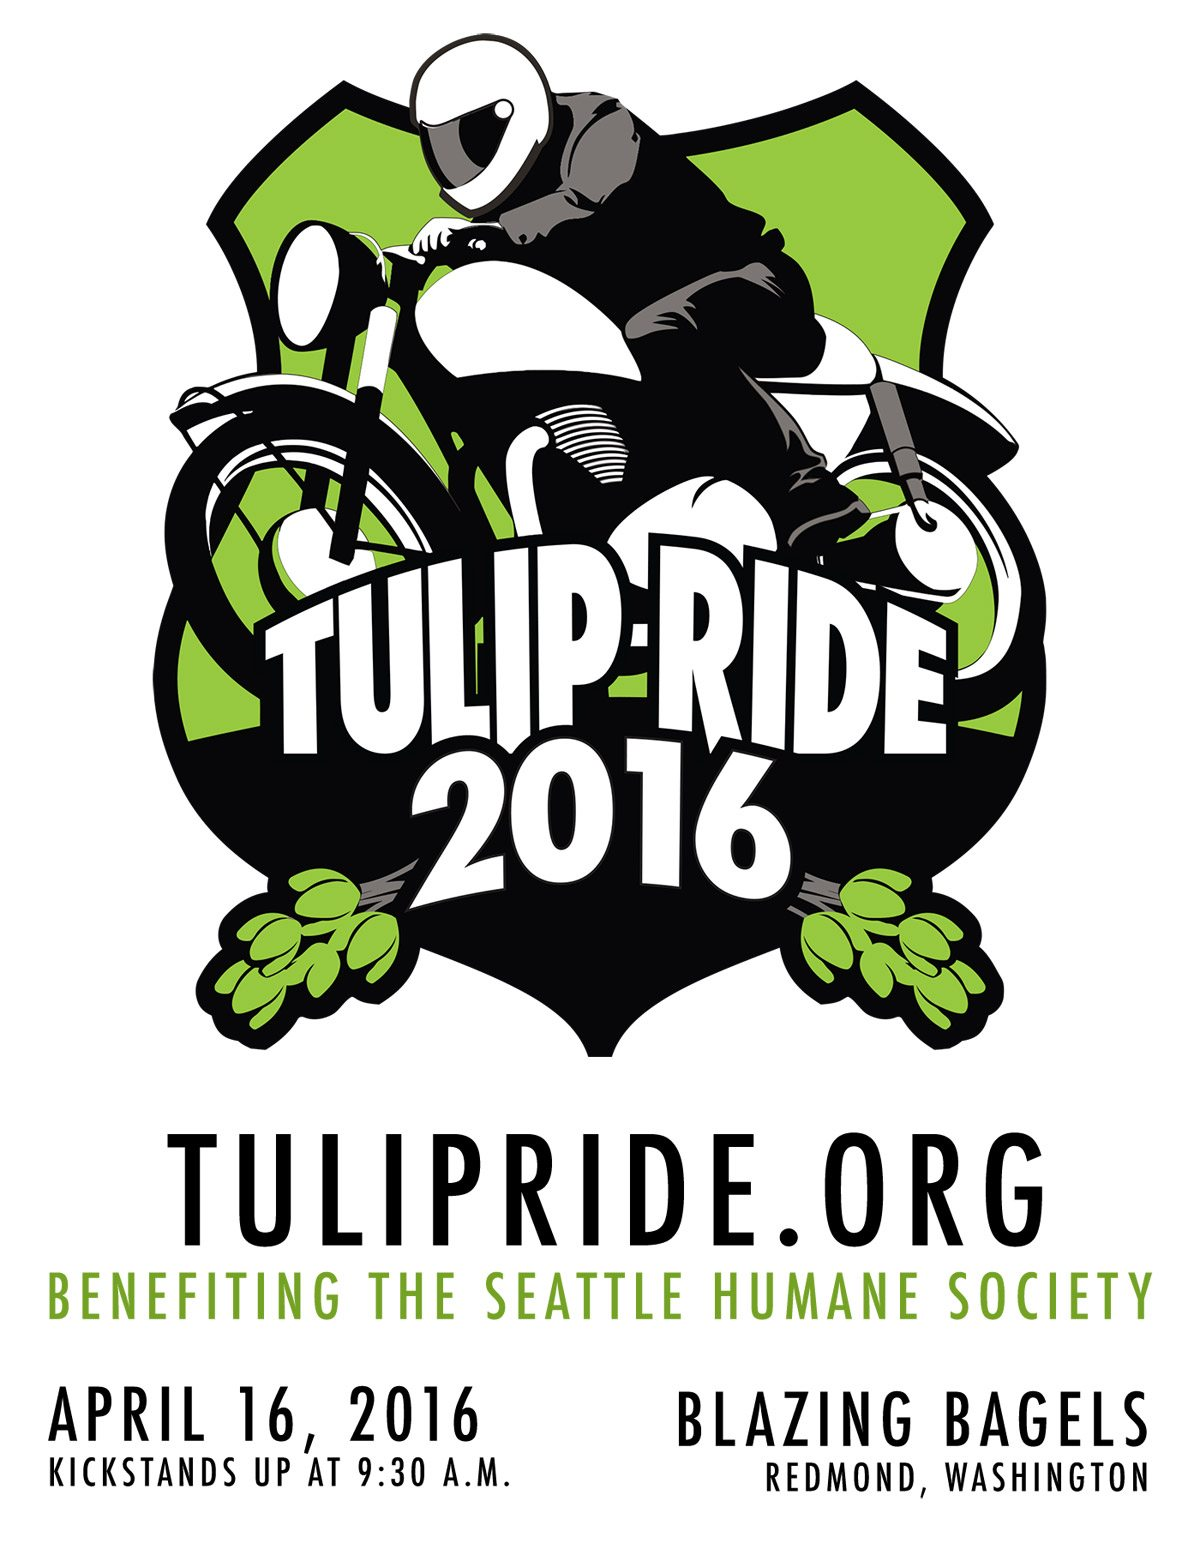 Tulip Ride 2016 - April 16 2016